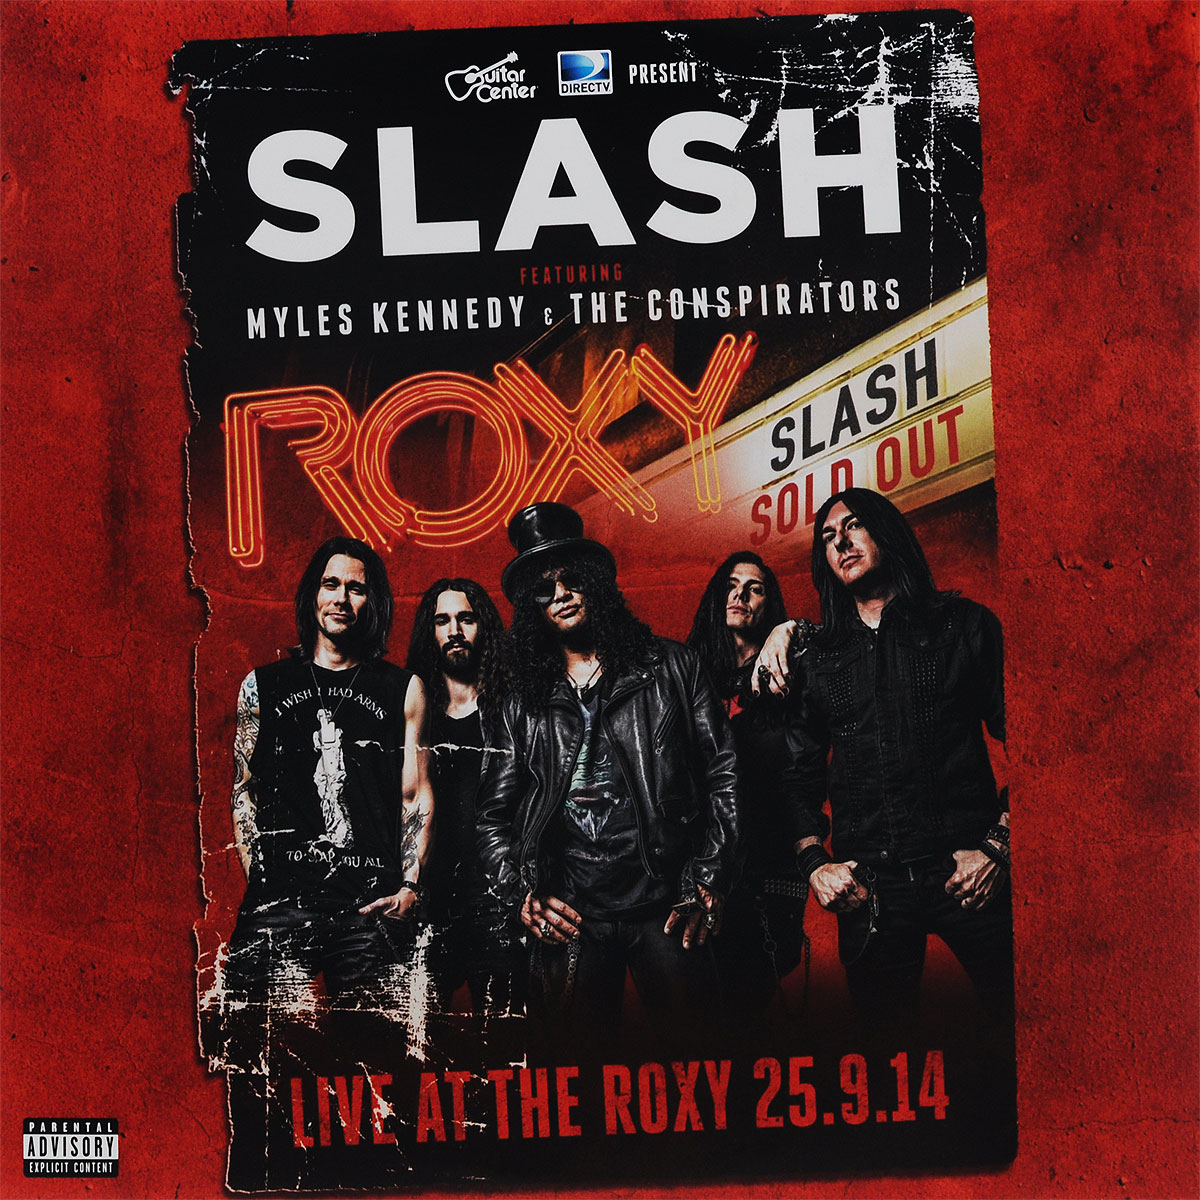 Slash,Майлс Кеннеди,The Conspirators Slash Featuring Myles Kennedy & The Conspirators. Live At The Roxy 25.09.14 (3 LP)